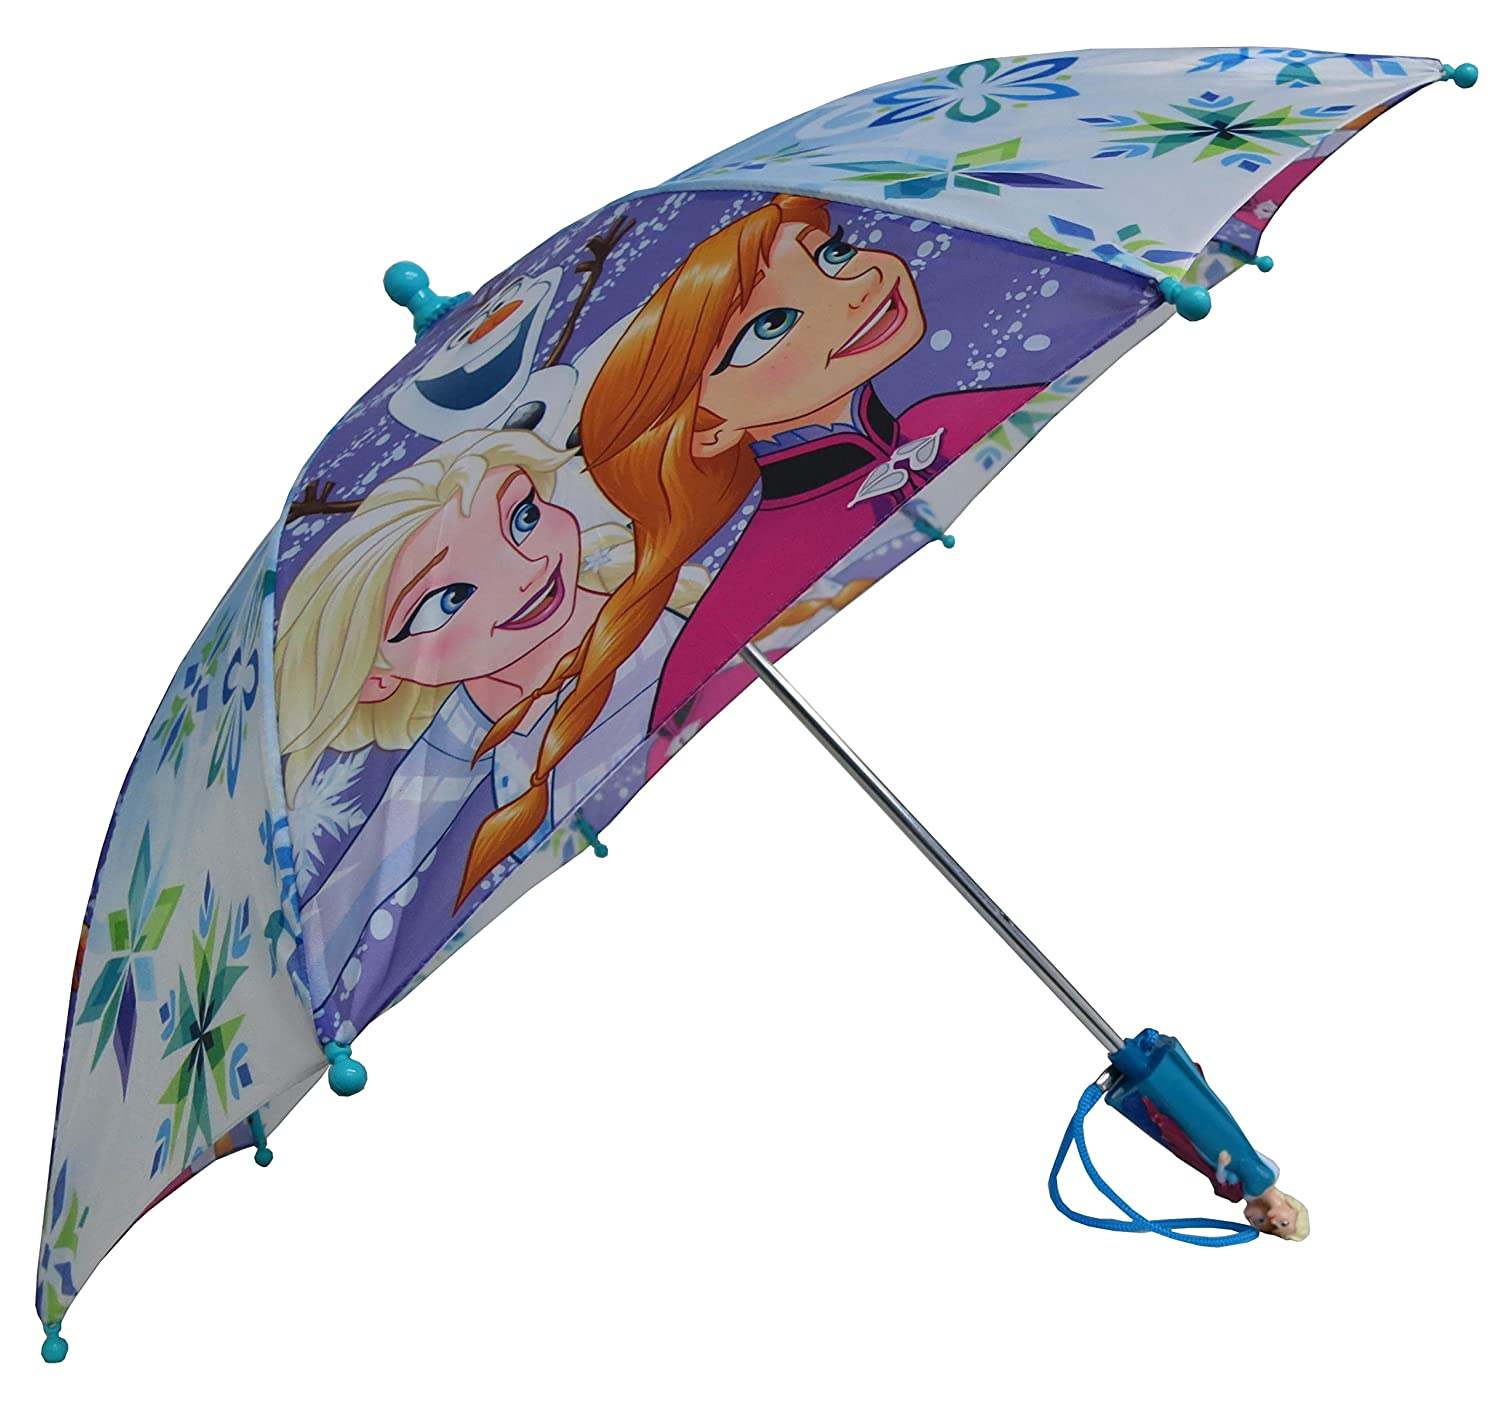 Umbrella - Frozen - Anna Elsa and Olaf Youth/Kids New 286986 ABG Accessories LYSB06W9JLG31-OFFSUPPLIES